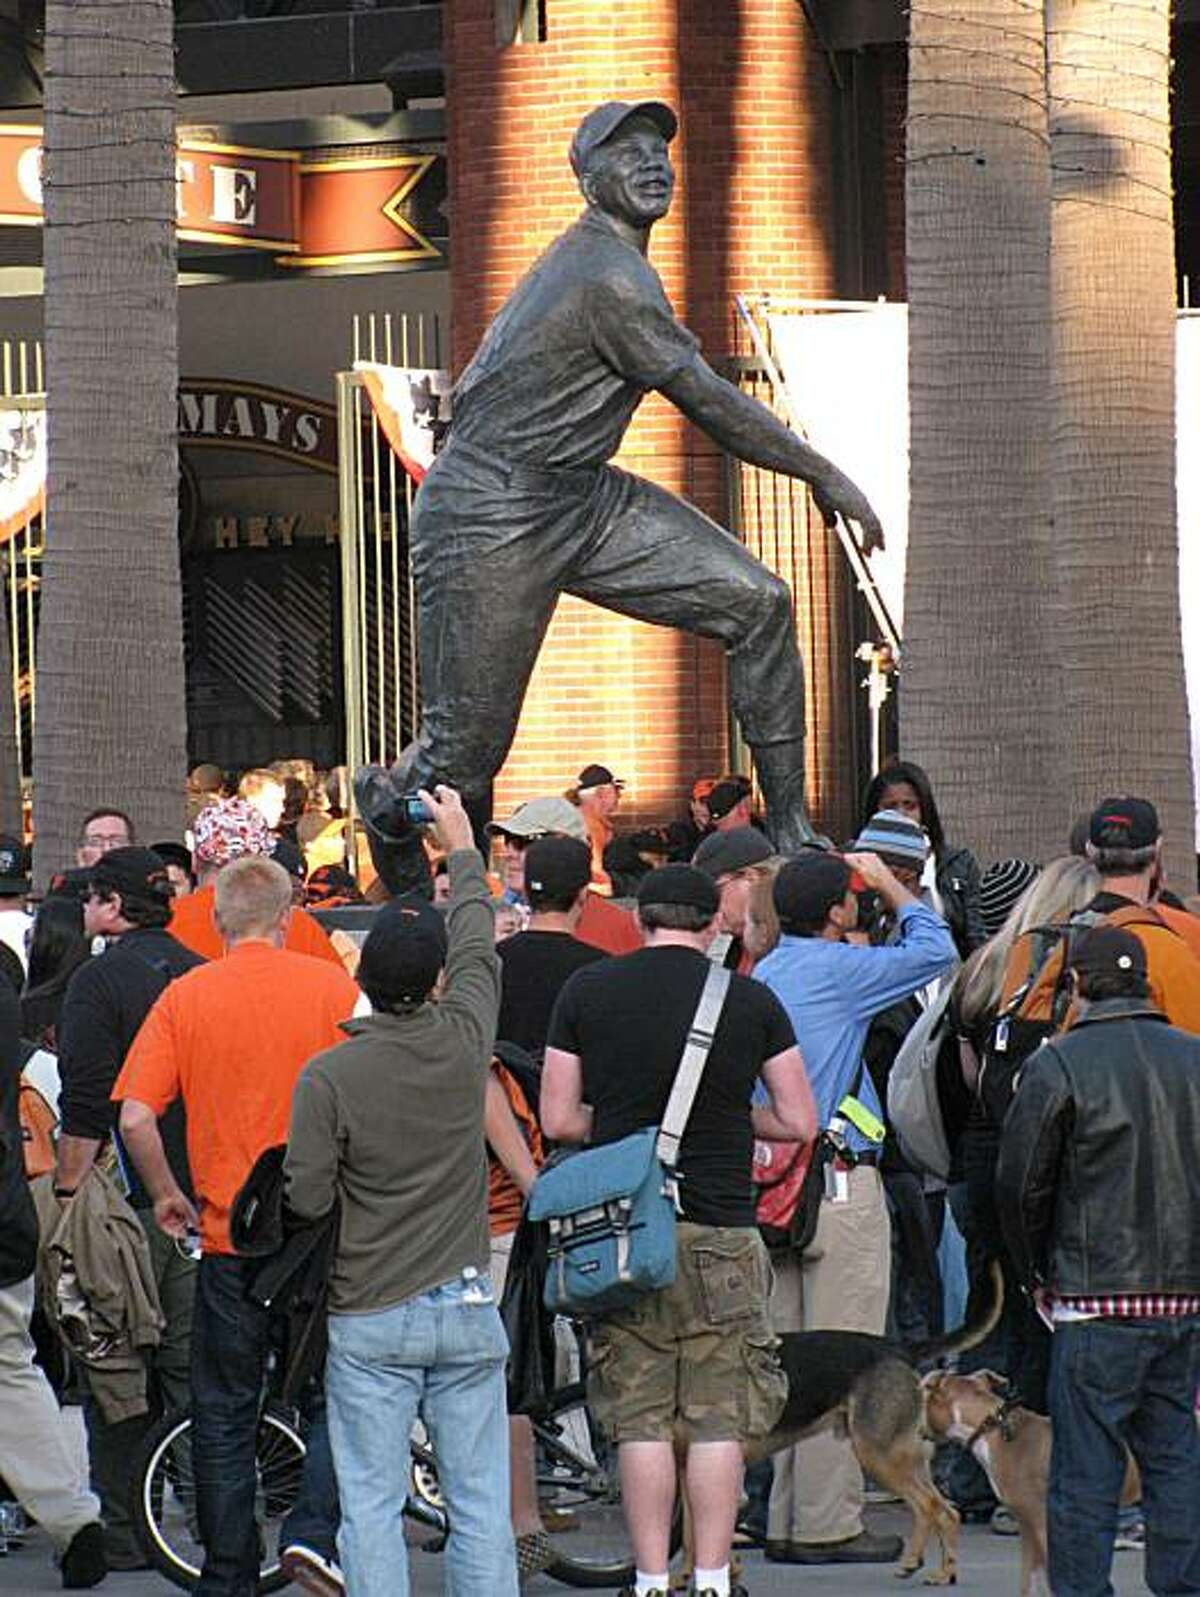 Willie Mays Plaza isn't just home to Giants fever, it's a solid work of urban design